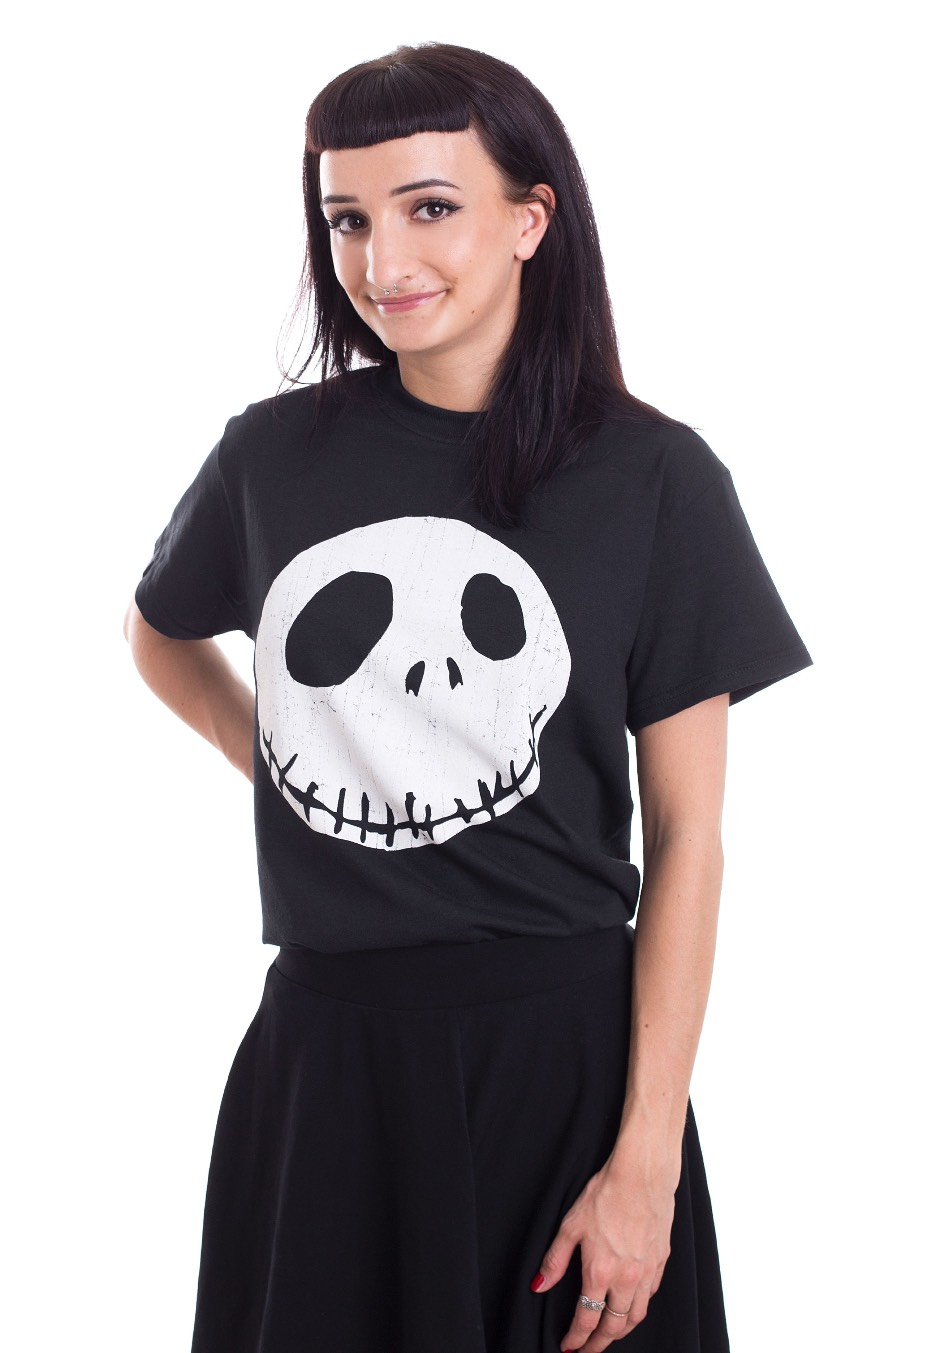 the nightmare before christmas cracked face t shirt